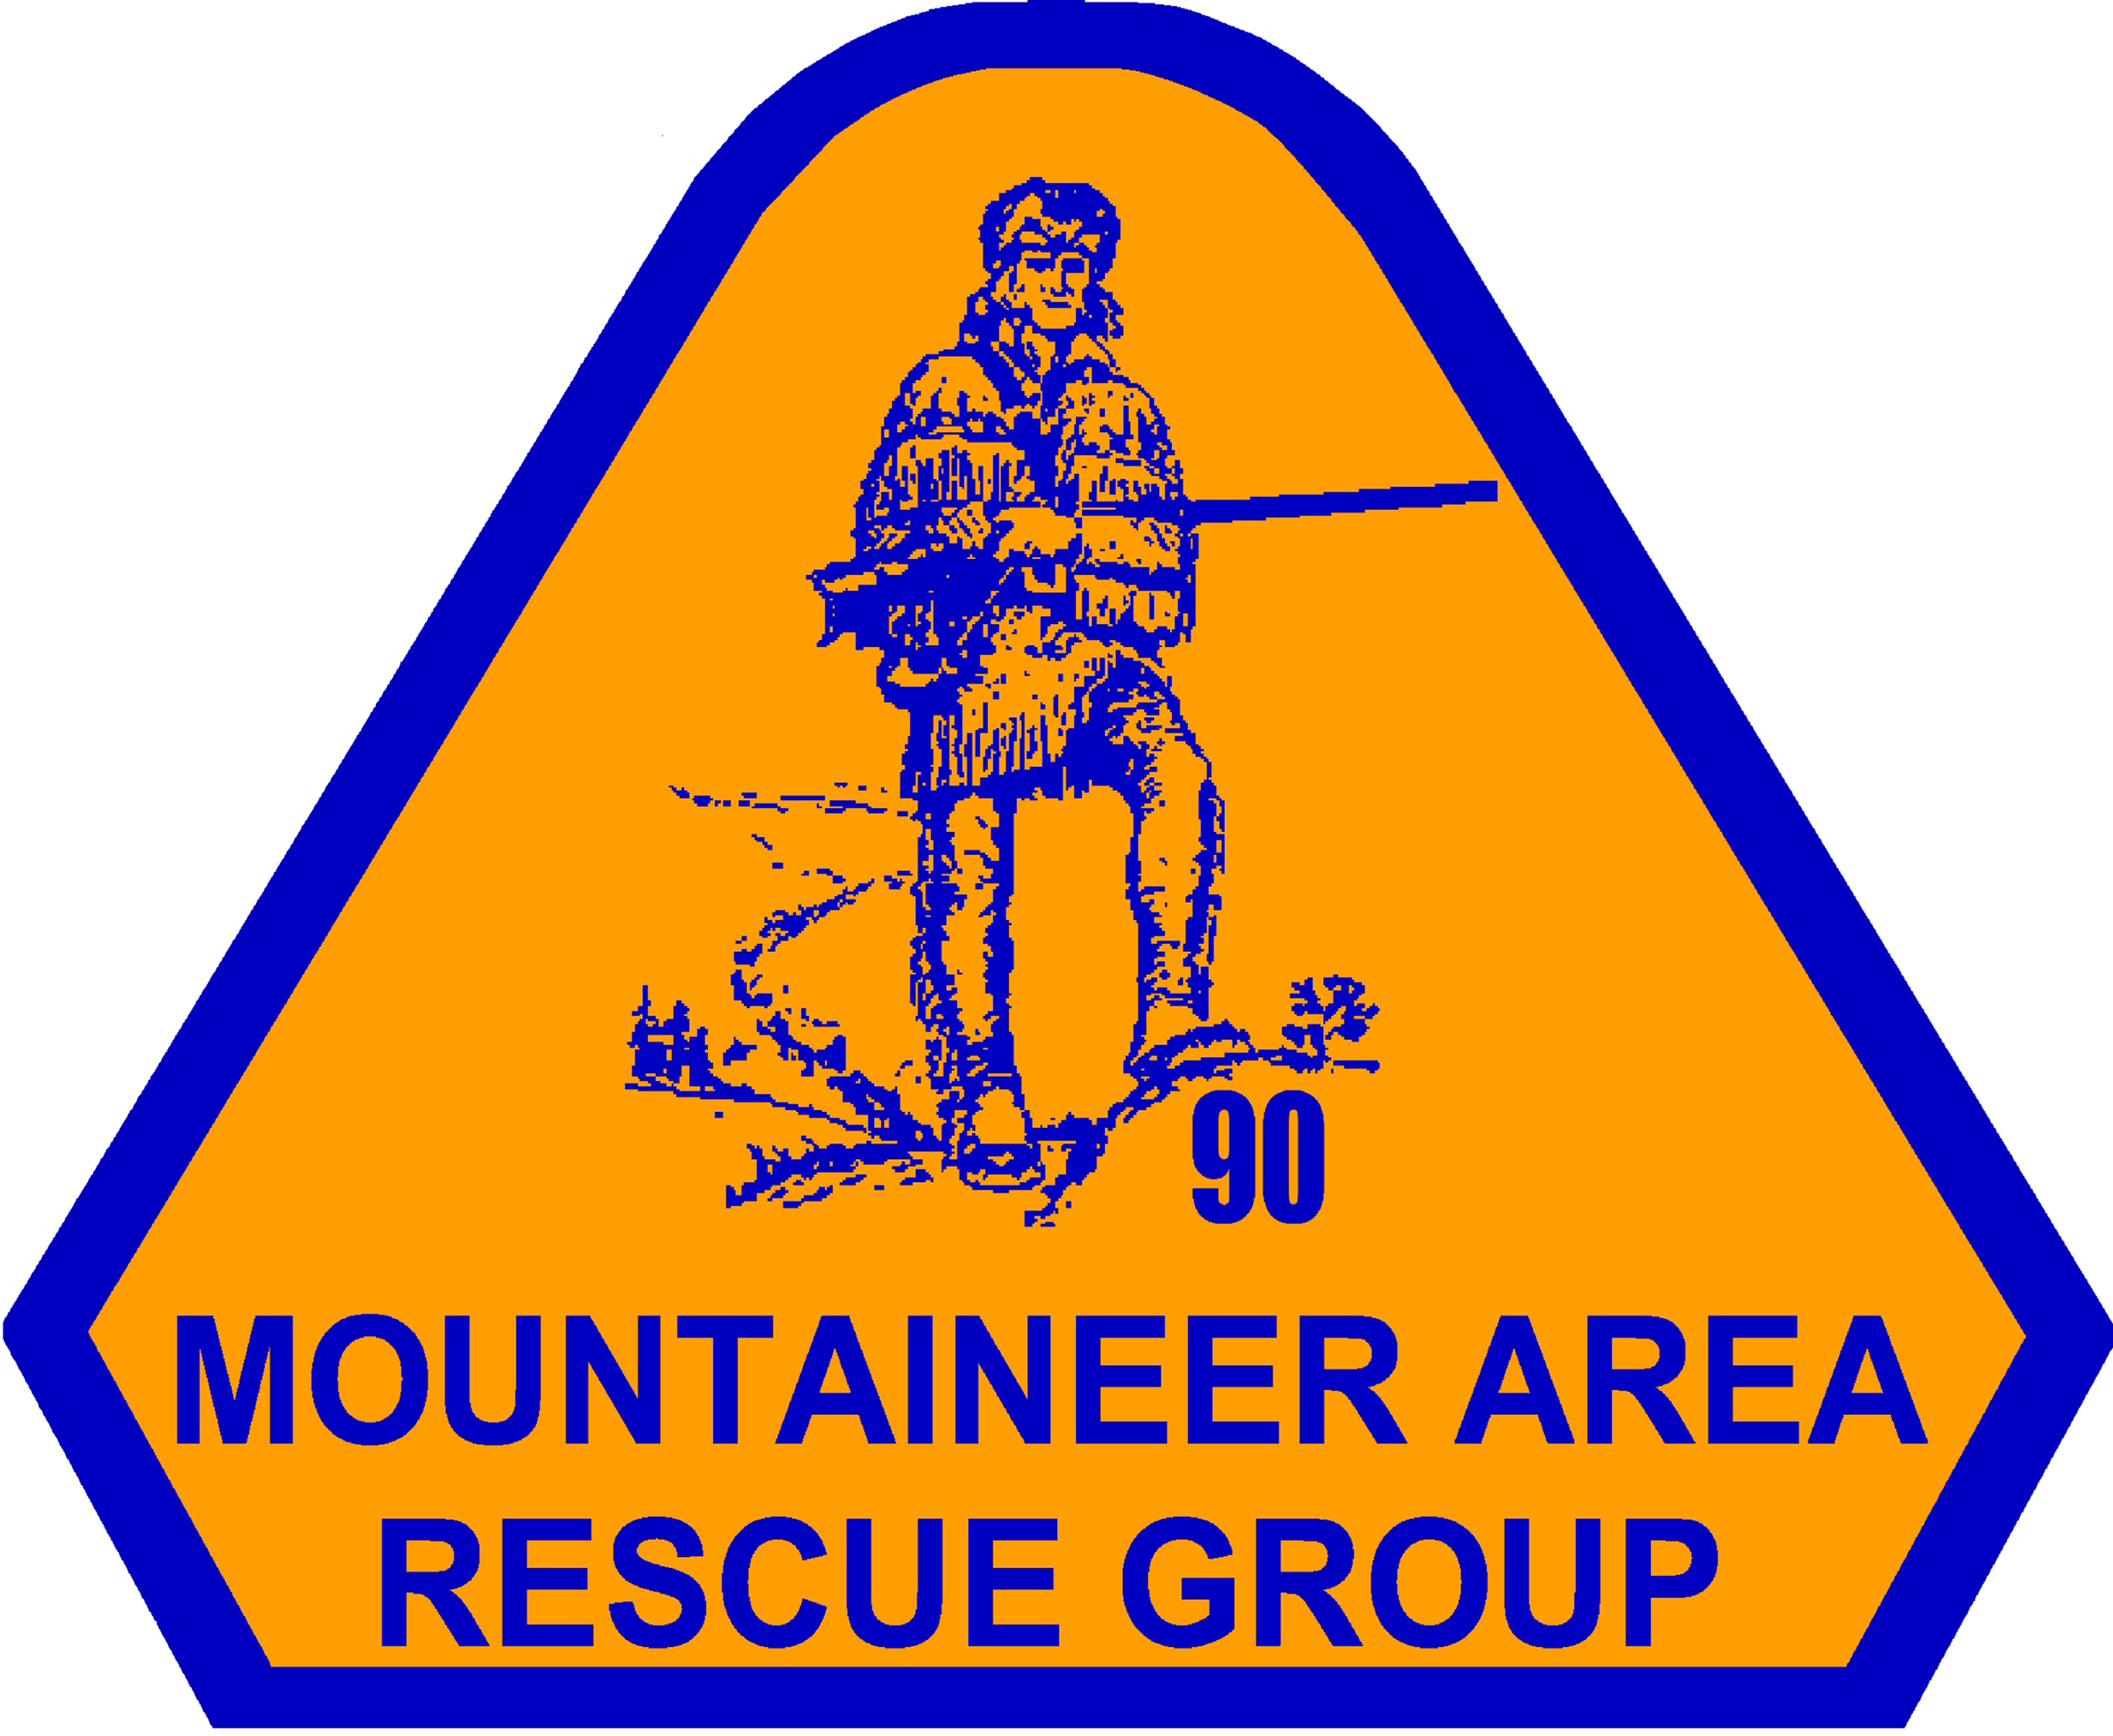 Mountaineer Area Rescue Group